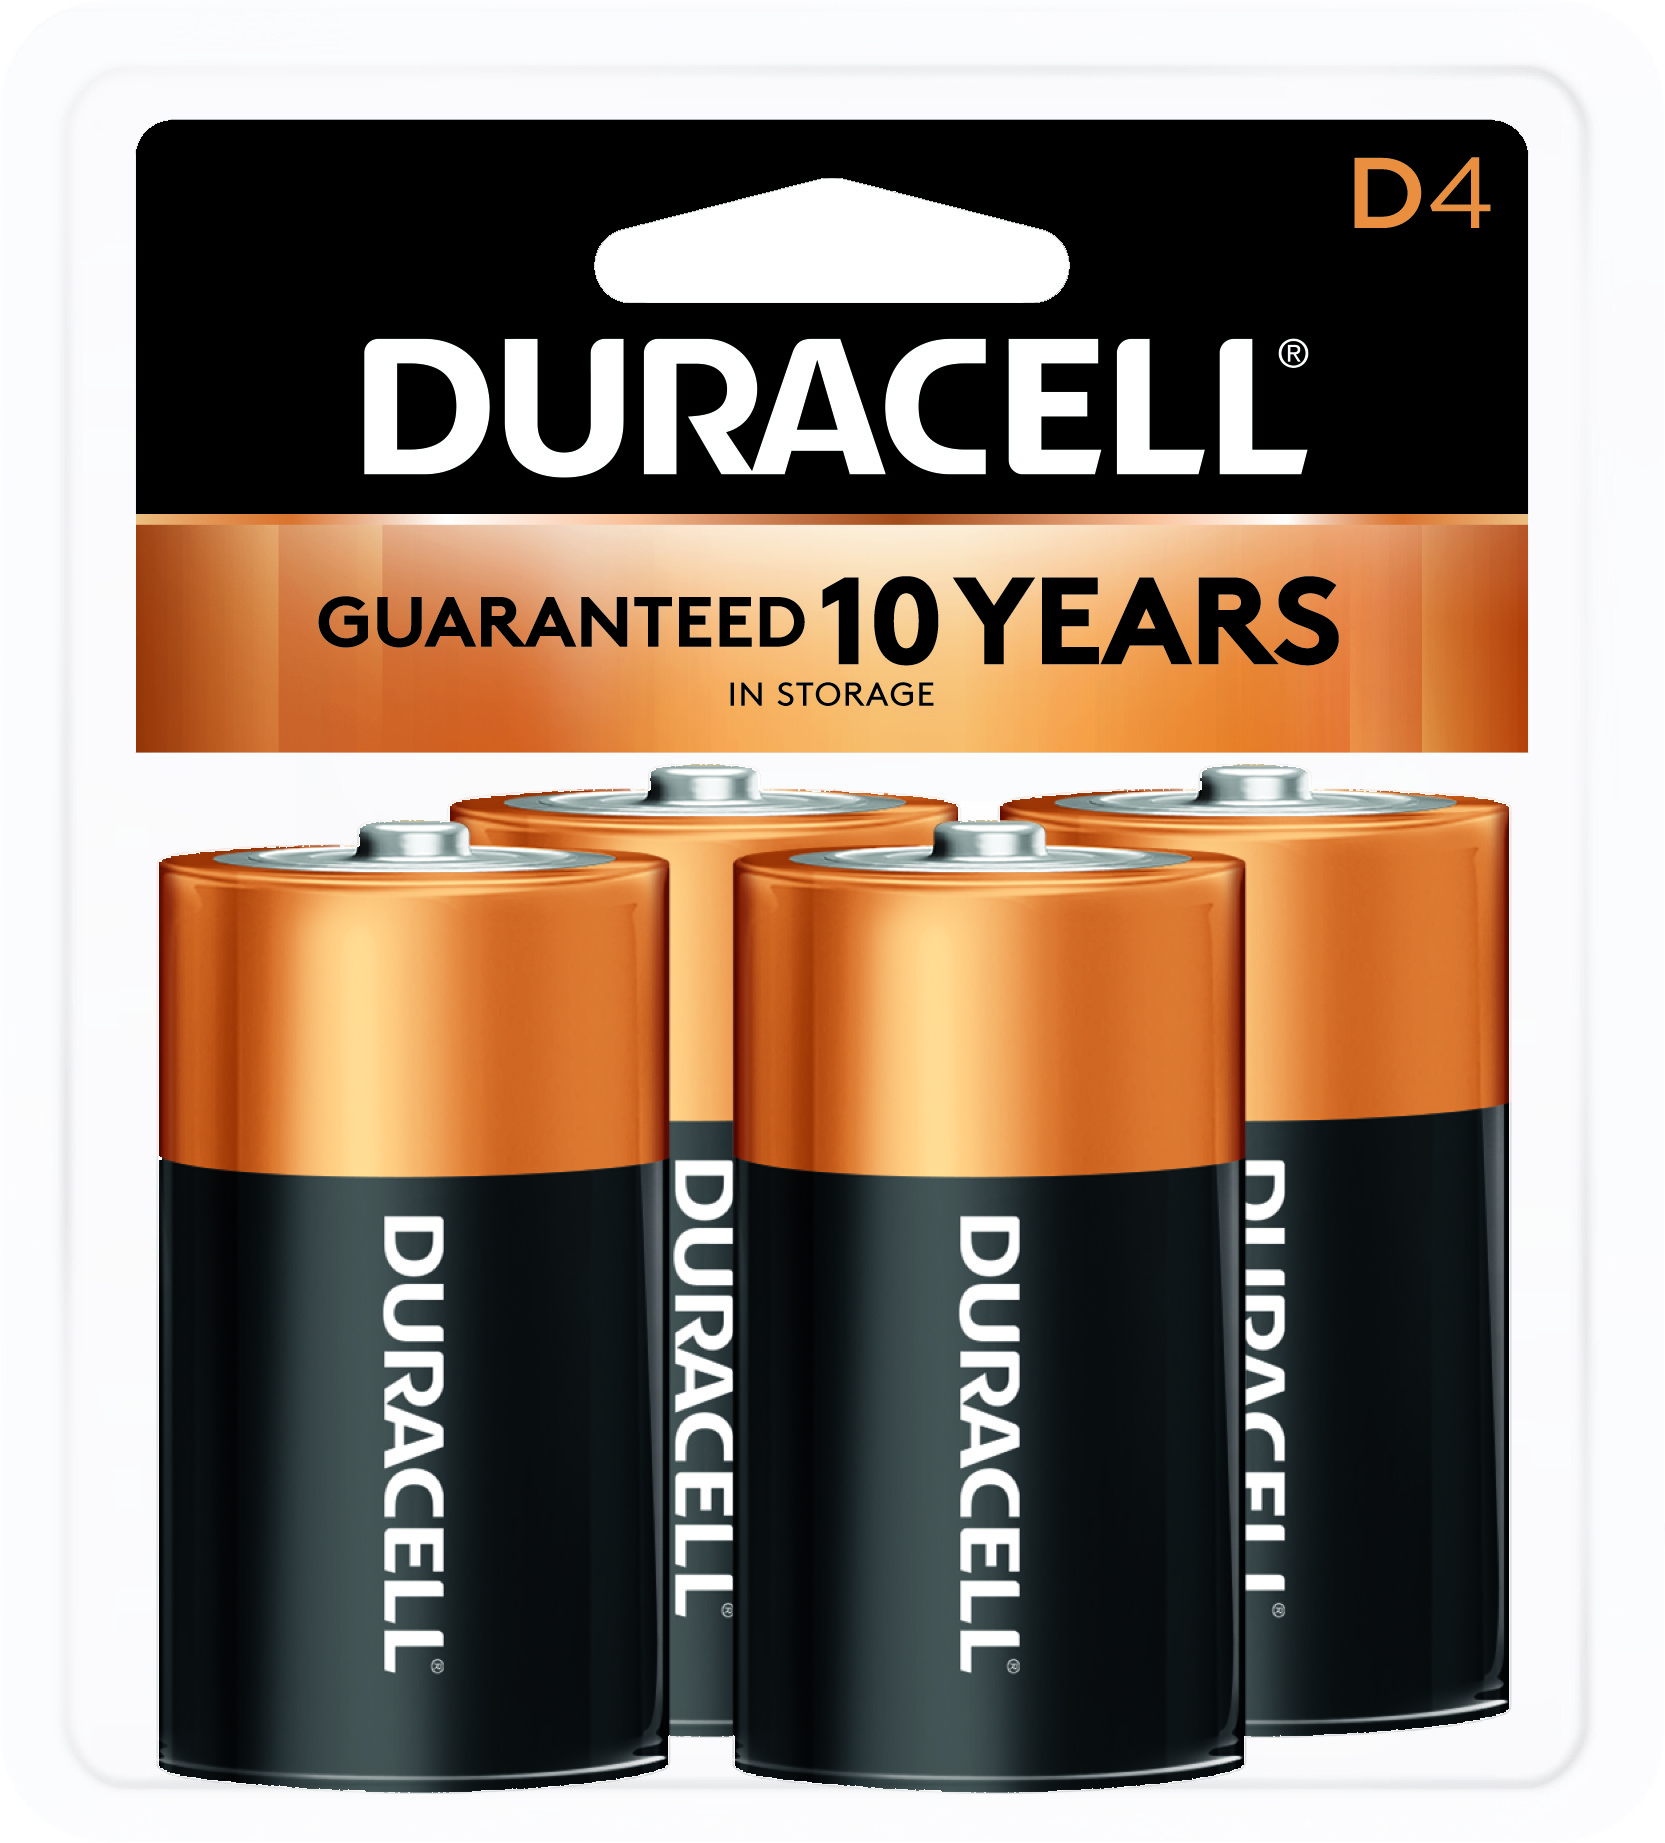 Duracell 1.5V Coppertop Alkaline, D Batteries, 4 Pack